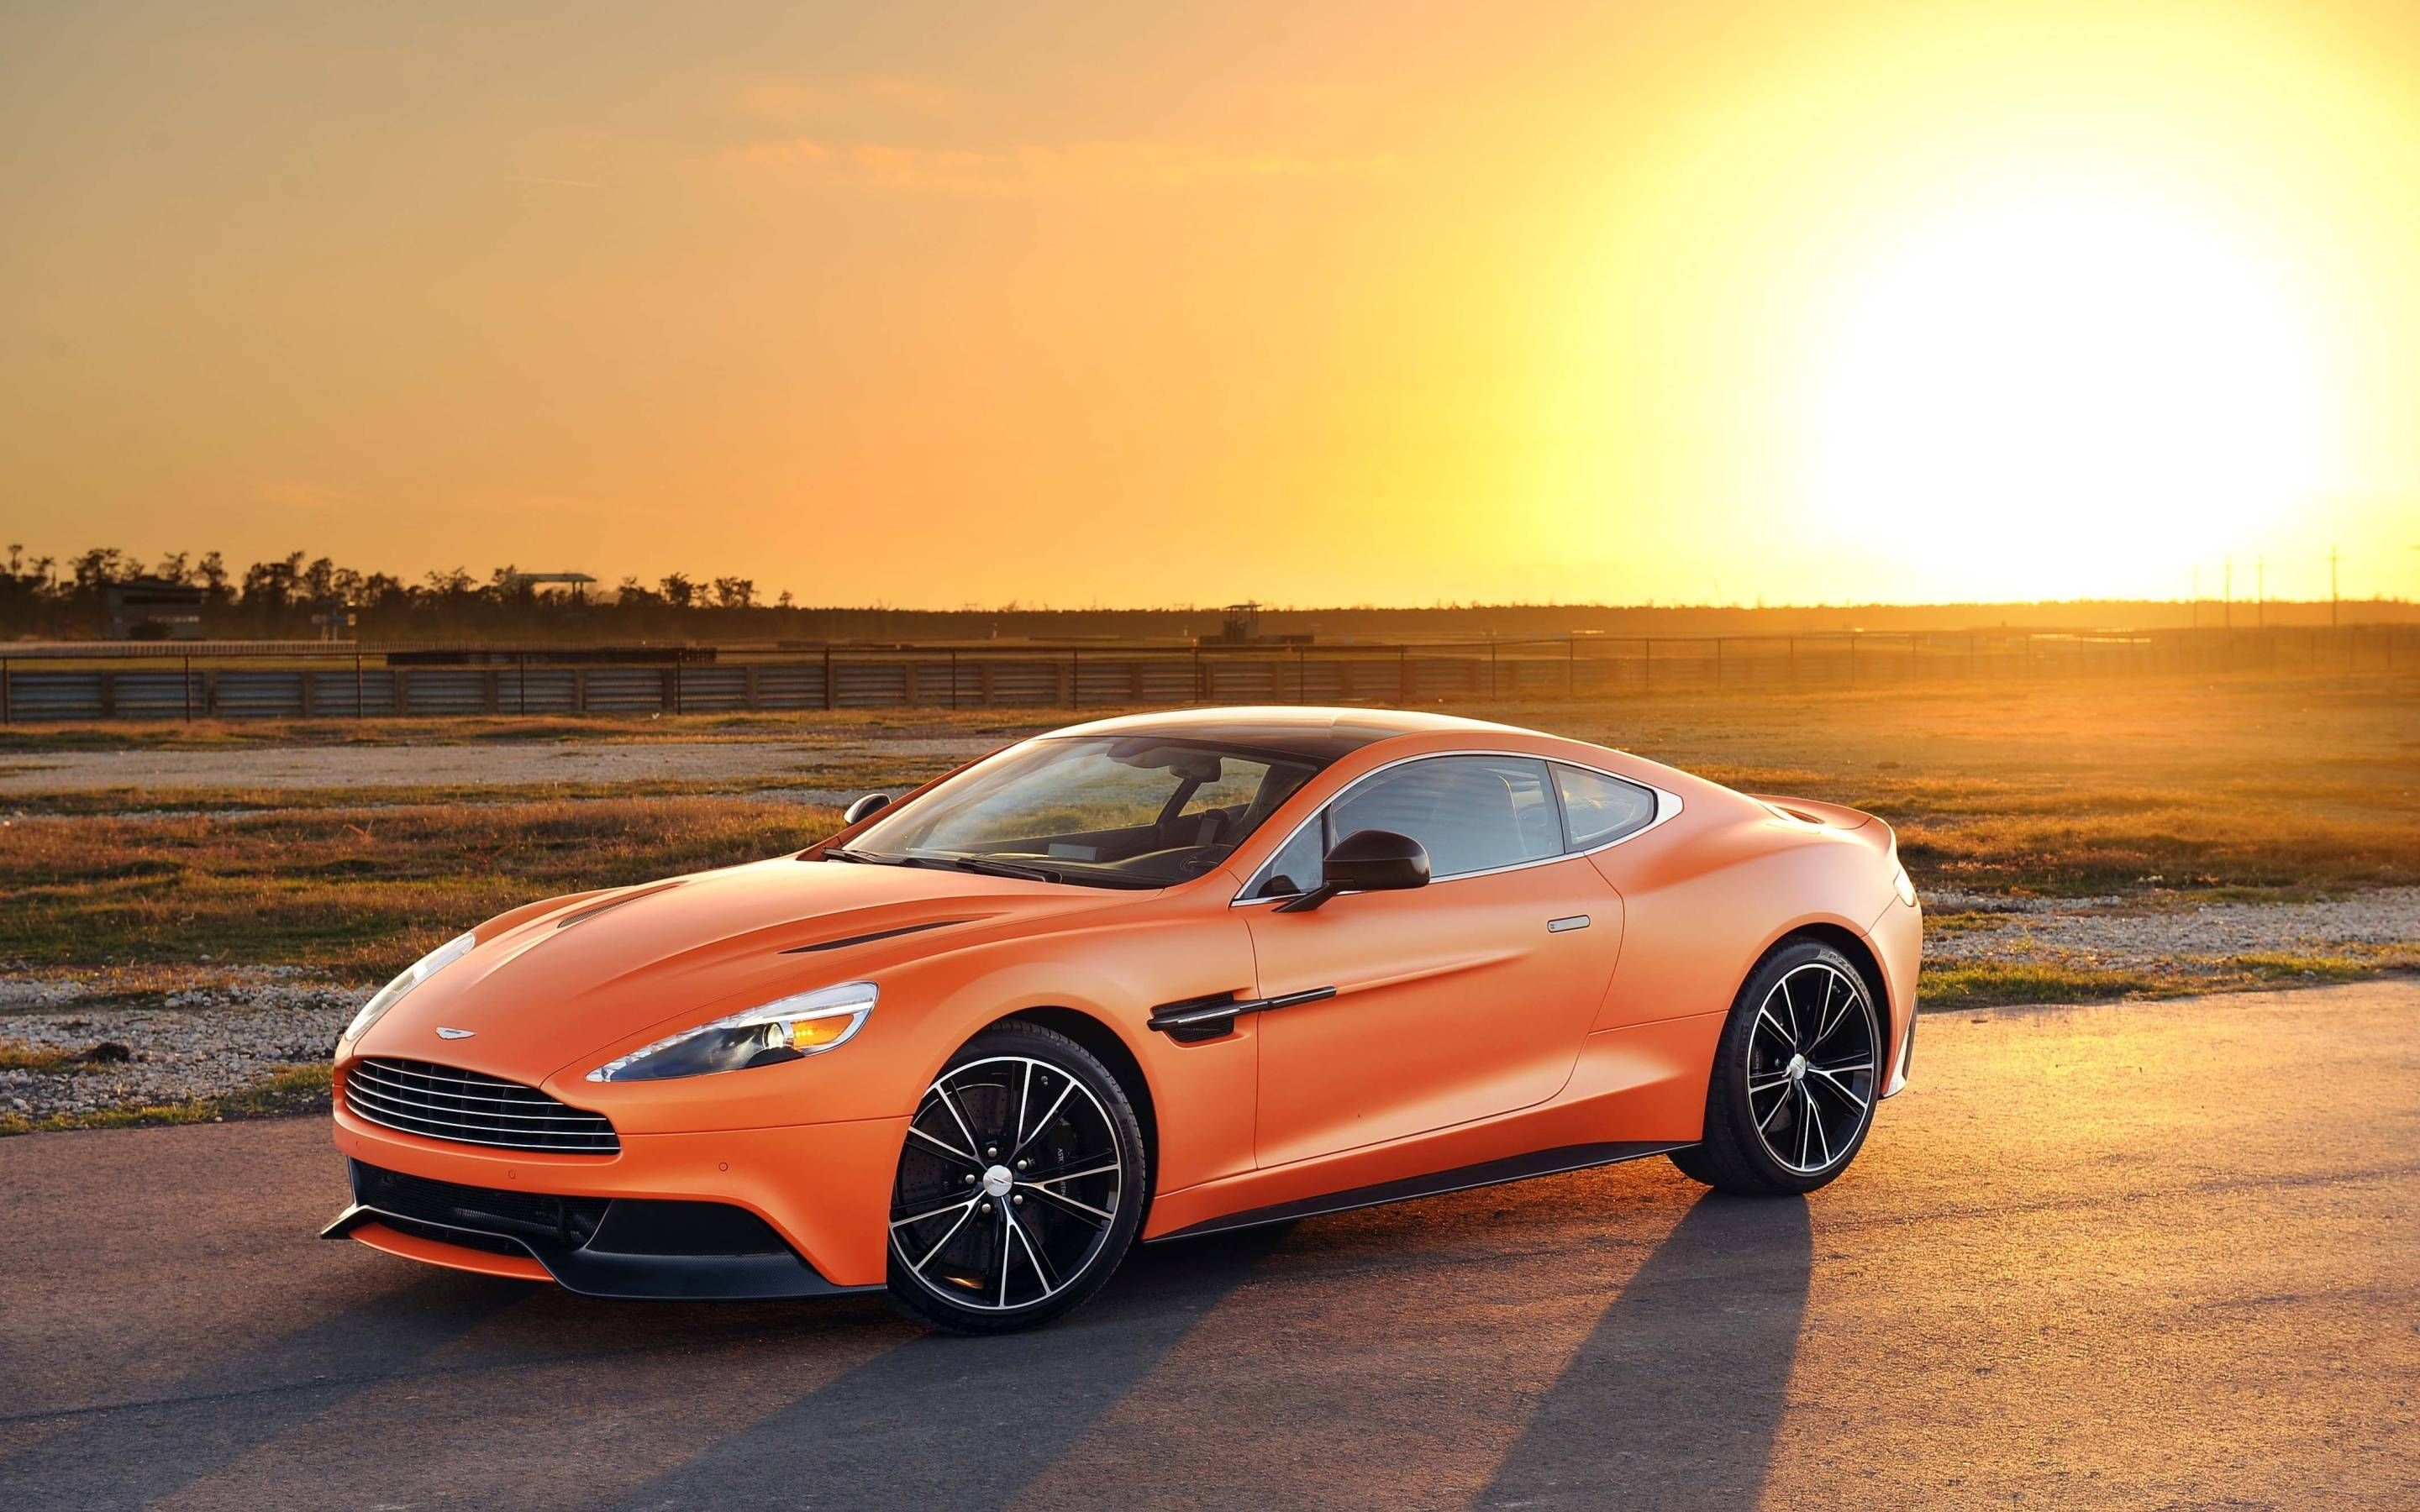 aston martin vanquish wallpaper images 0cw cars aston martin rh pinterest com